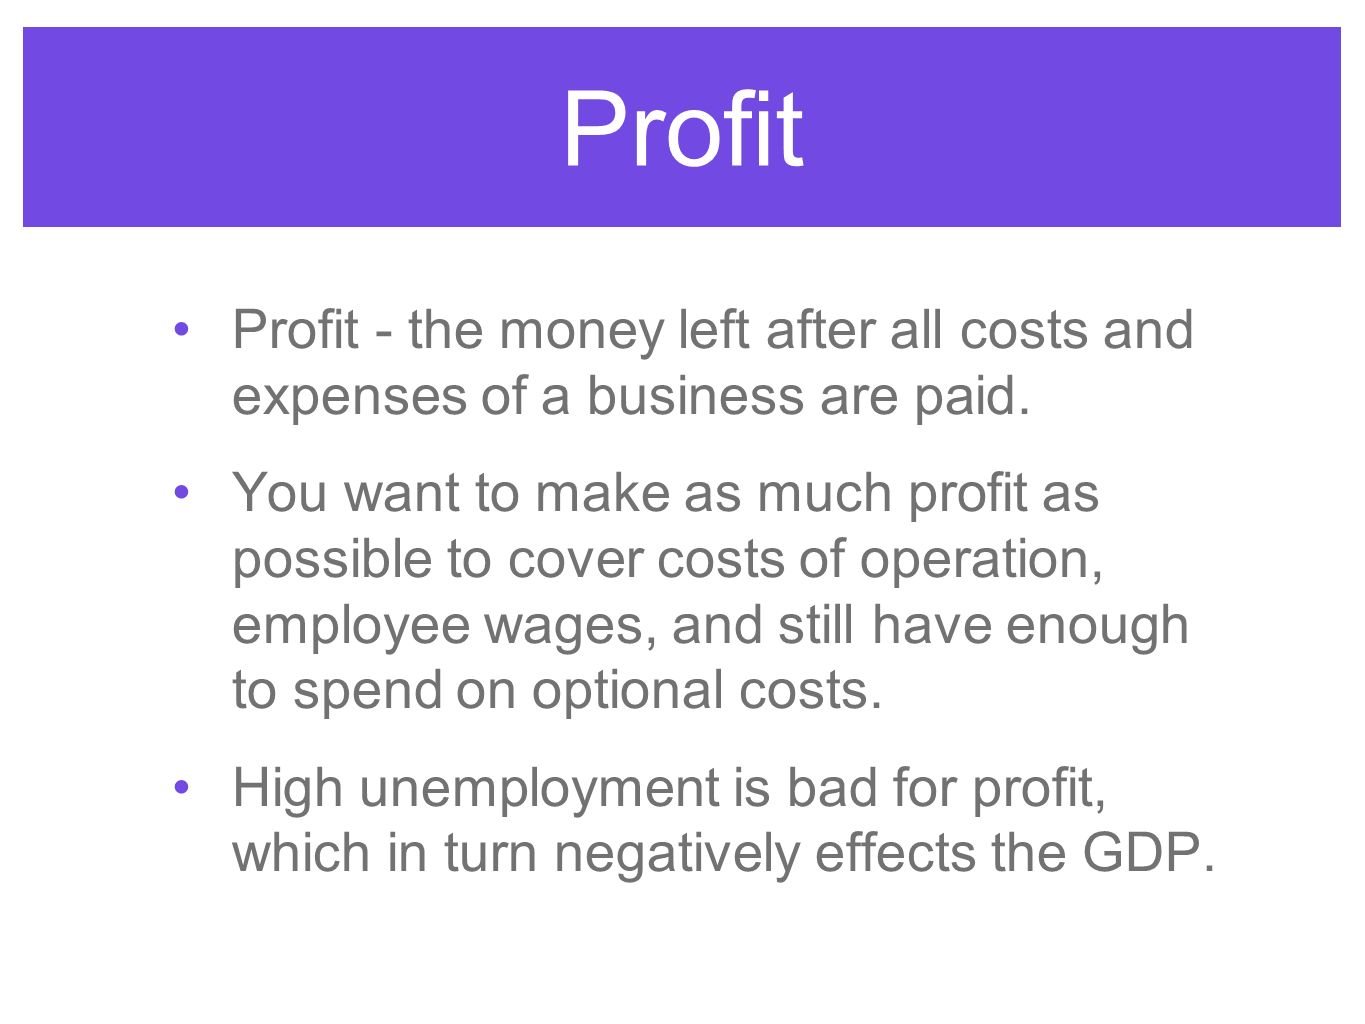 Profit Profit - the money left after all costs and expenses of a business are paid.